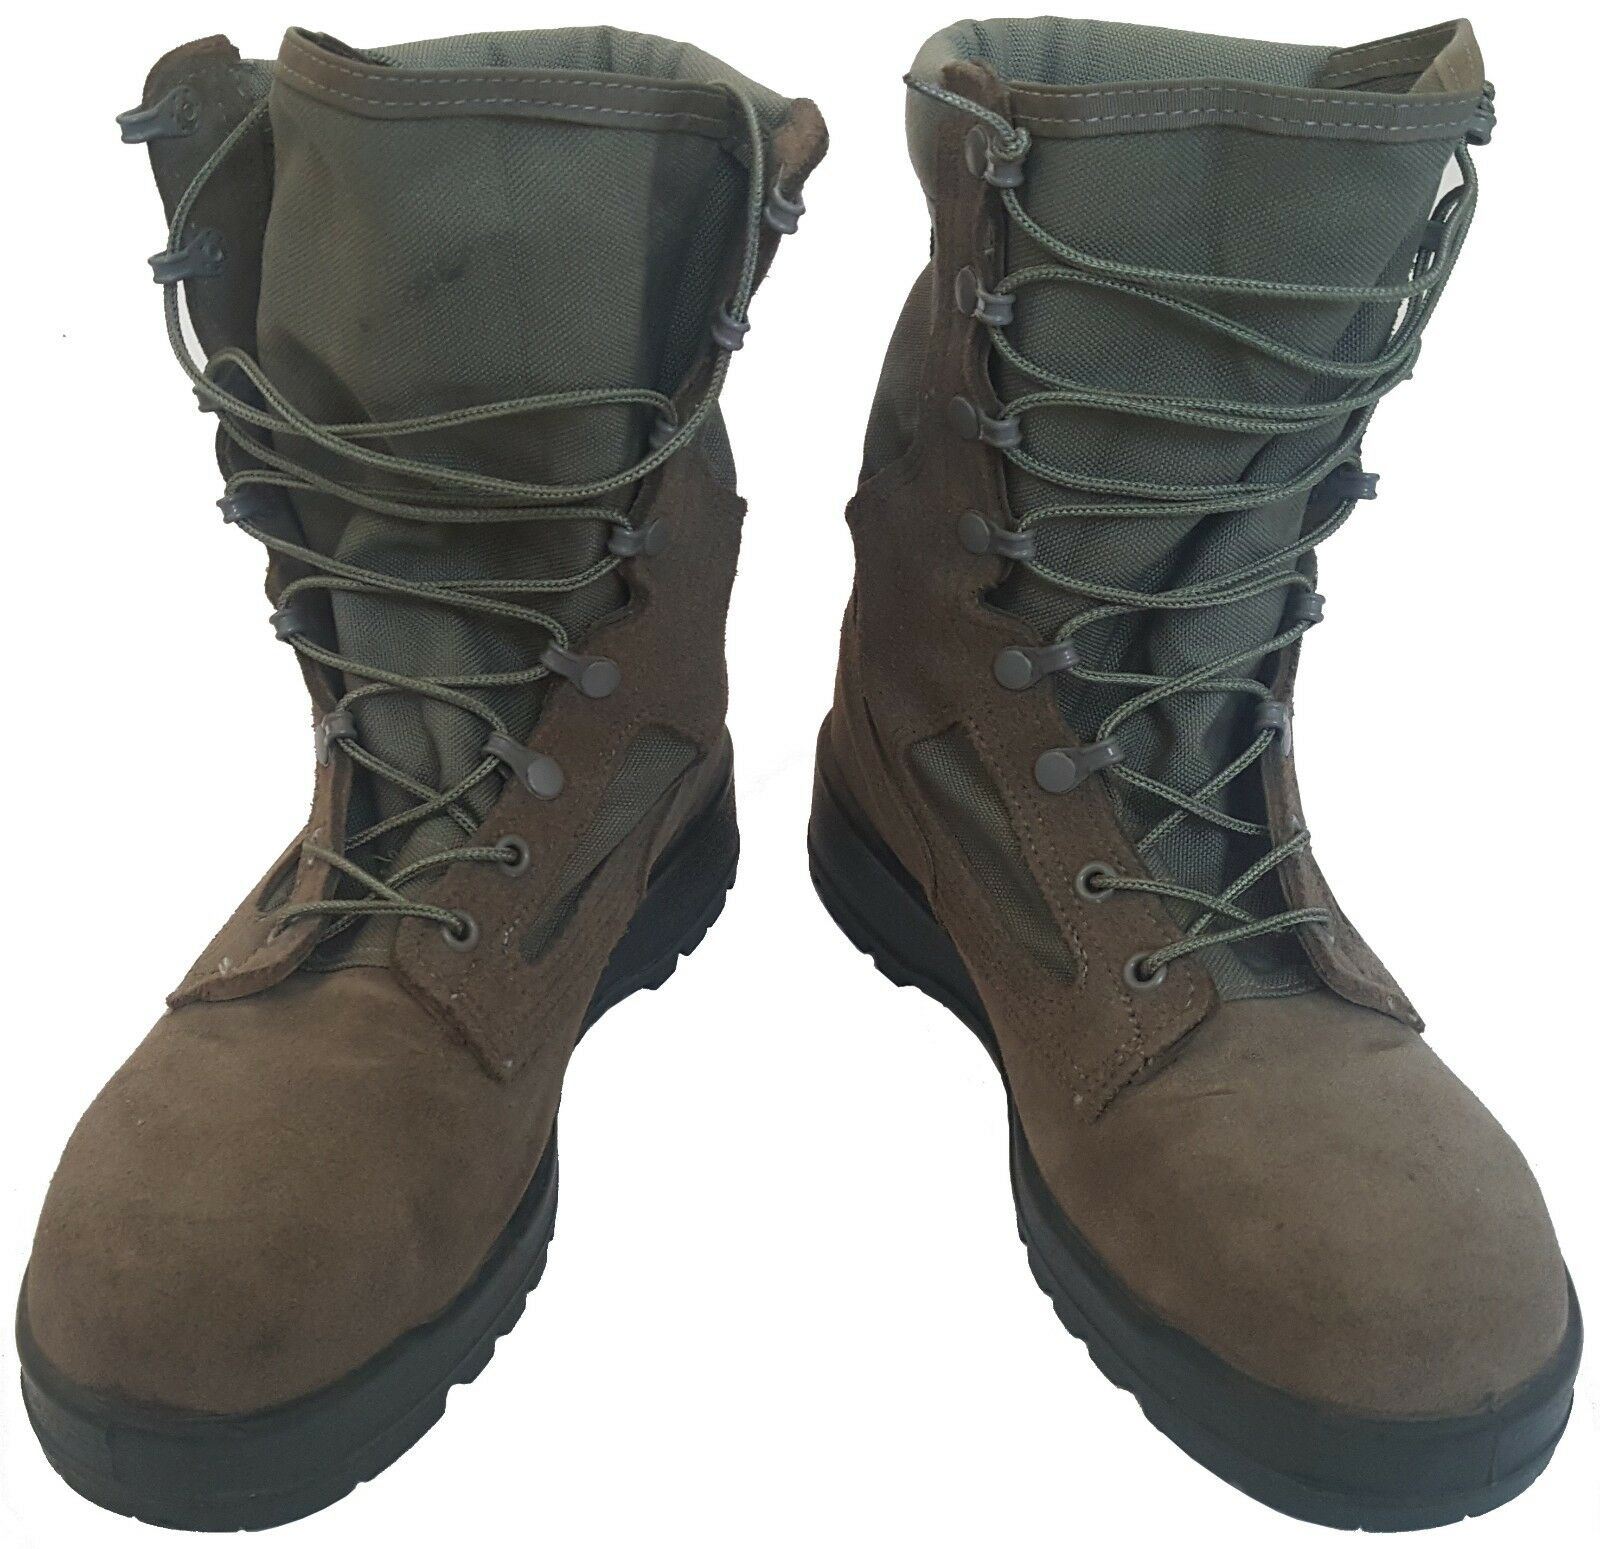 Military Boots Belleville Gortex Steel Toe Boot Sage Green 600ST size 08.5R